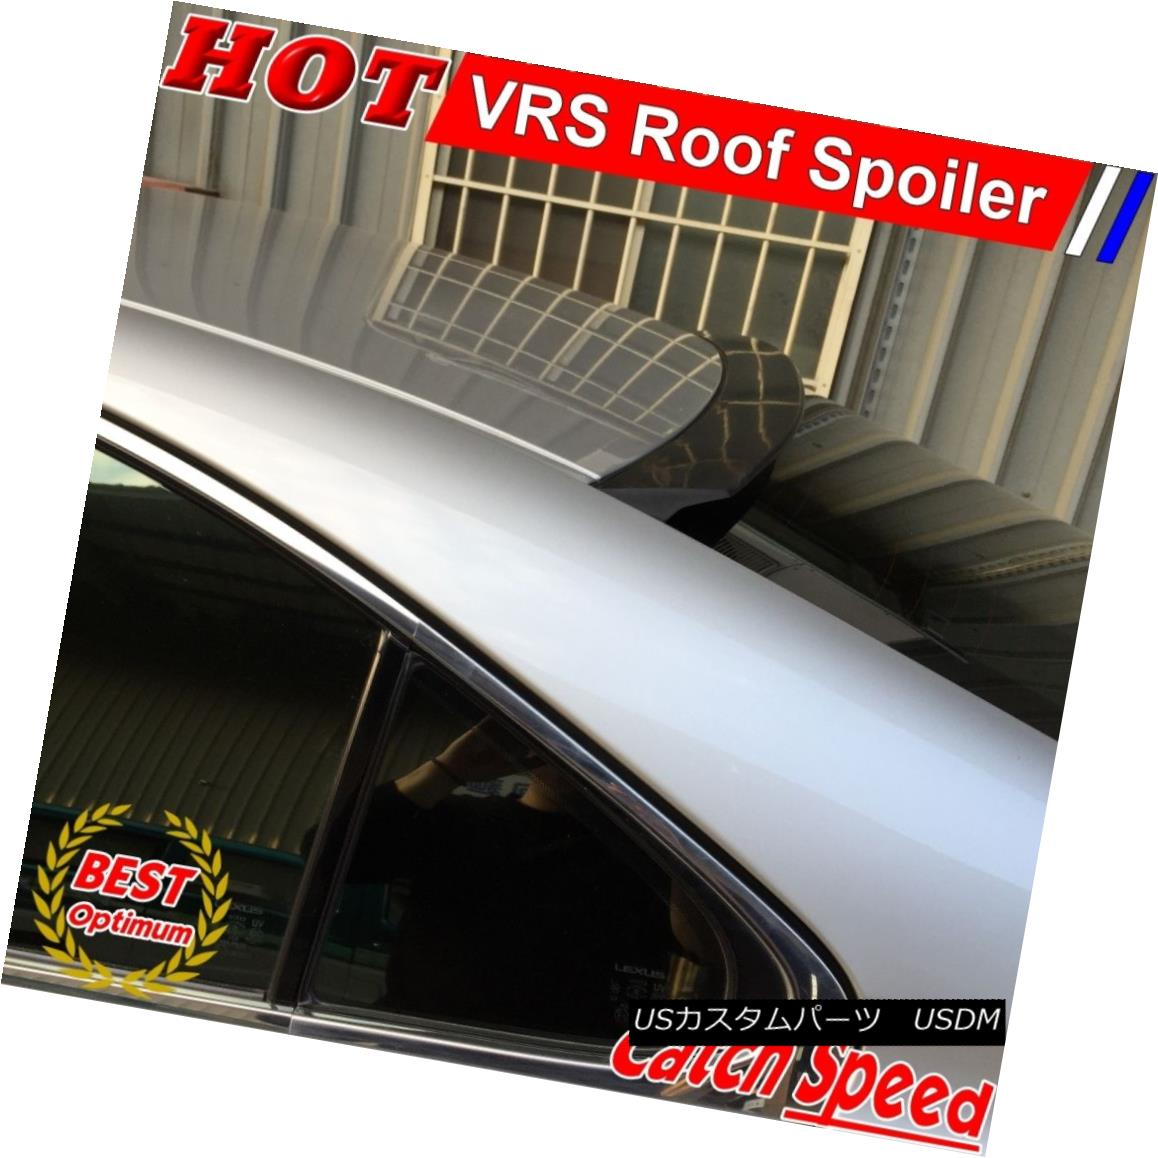 Flat Black VRS Type Rear Roof Spoiler Wing For Toyota Allion 2001-2007 Sedan